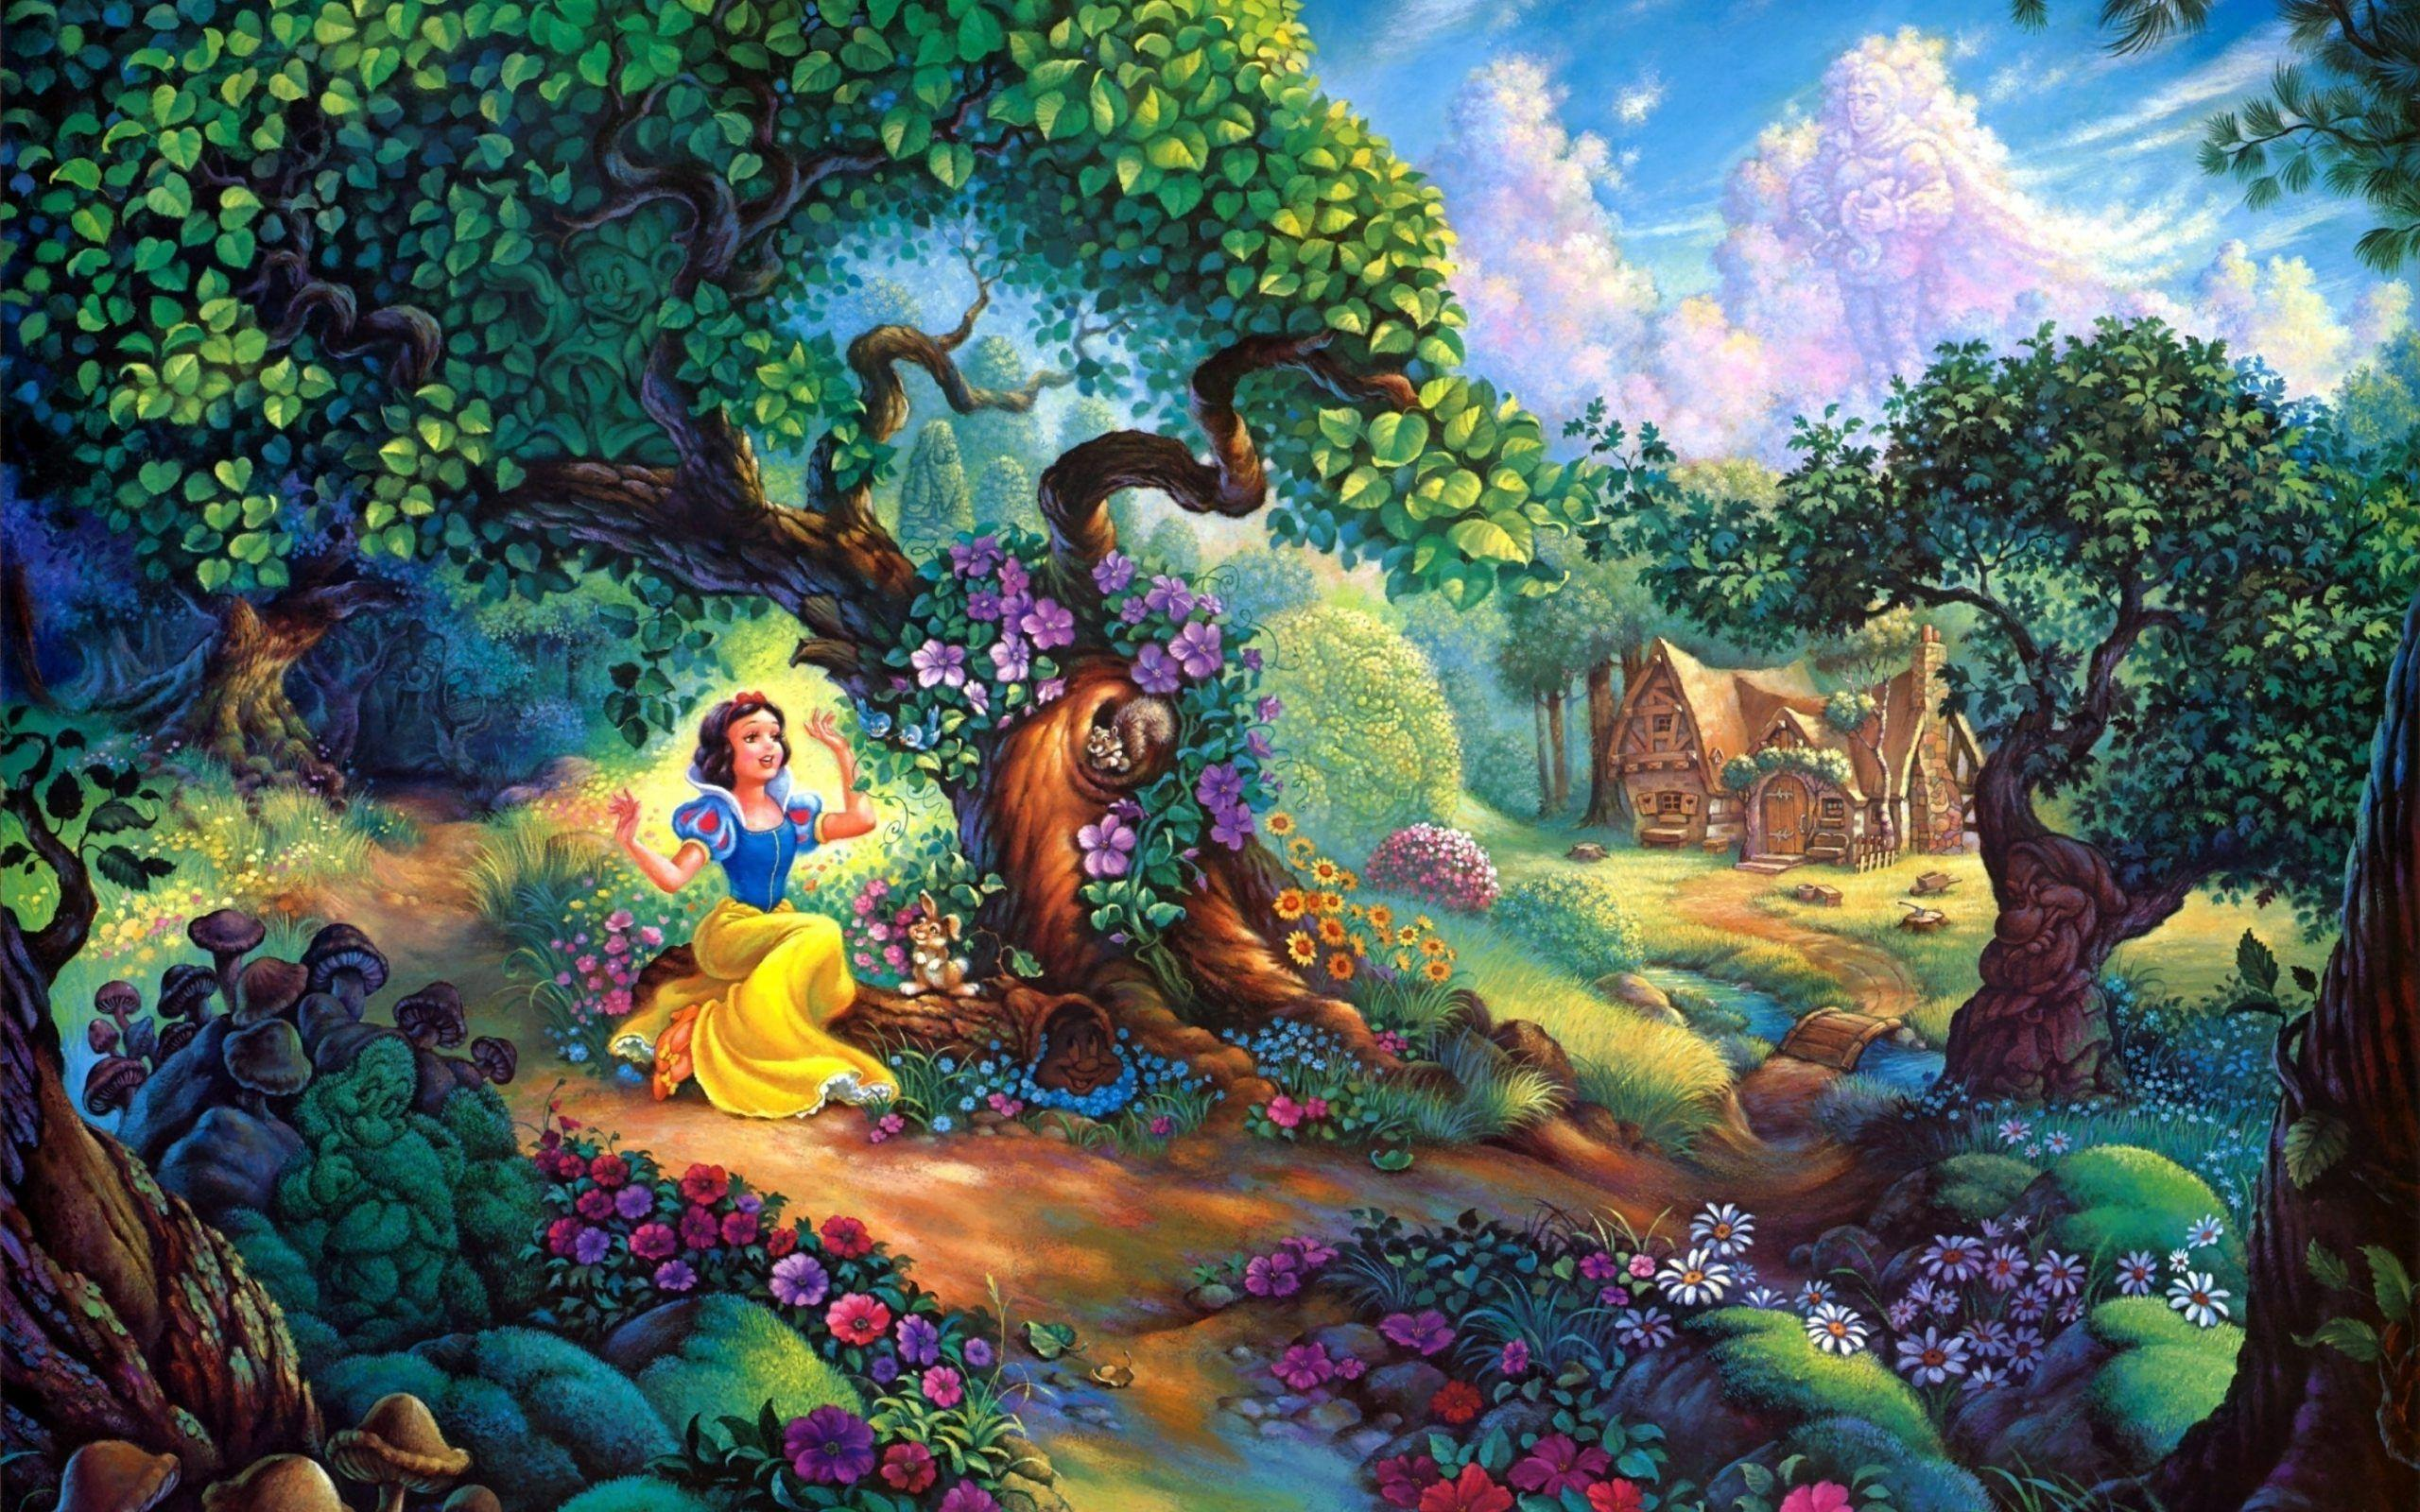 Disney Snow White Fairy Tale Wallpapers for desktop and mobile in